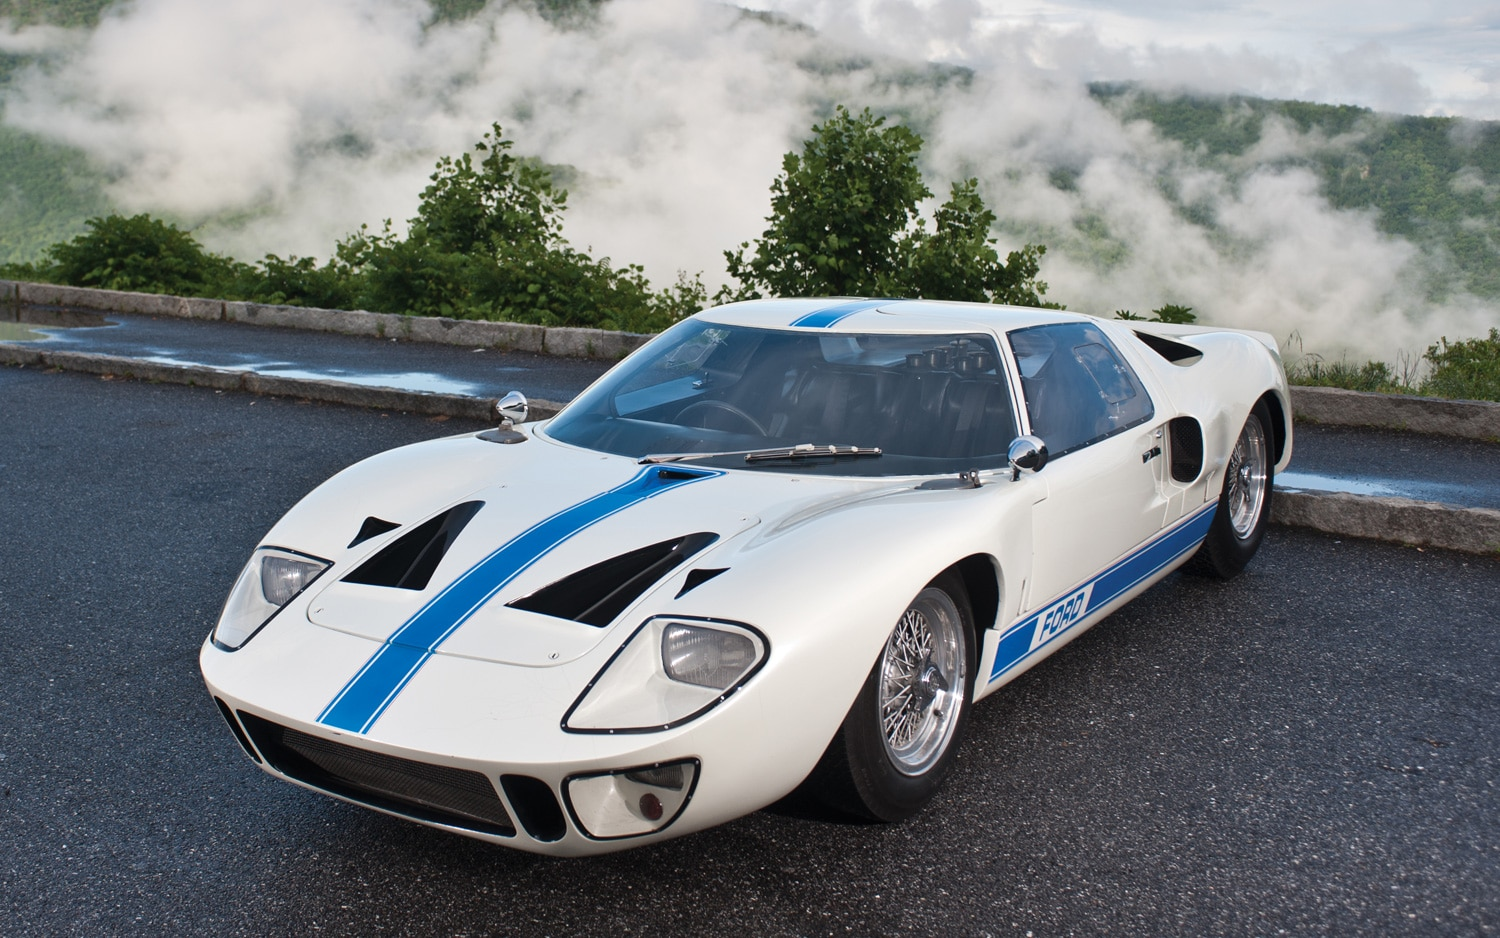 ford gt40 used in le mans sells for 11 million sets new american car record. Black Bedroom Furniture Sets. Home Design Ideas